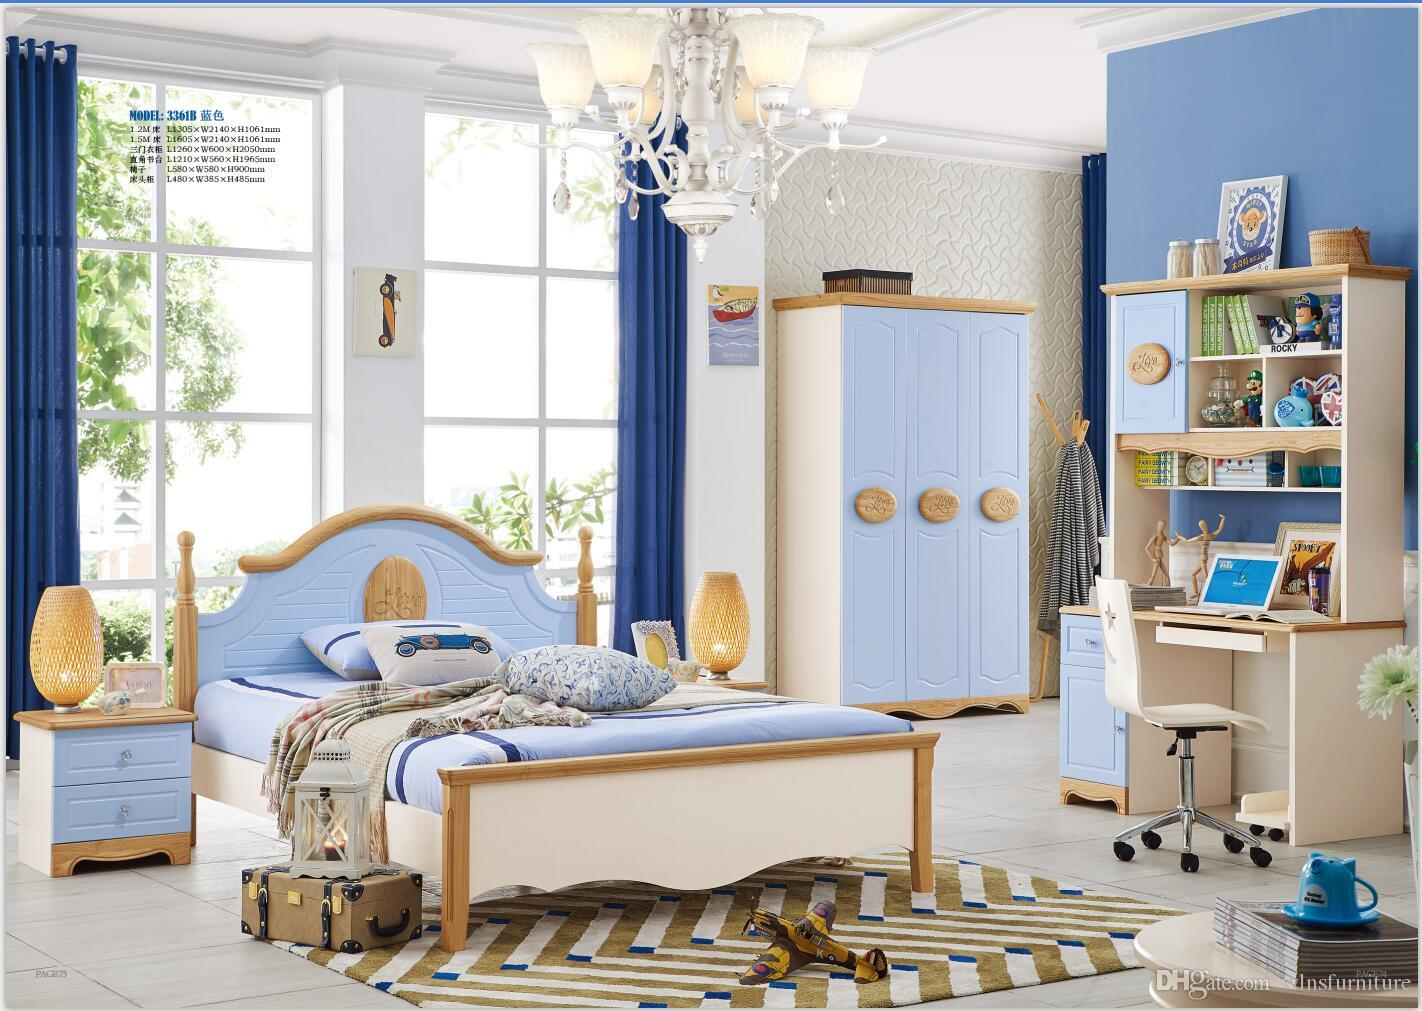 Image of: 2020 Modern Bedroom Furniture Set Solid Wood Healthy Children Bedroom Furniture Set Bed Wardrobe Desk Bedside Table Chair From Wlnsfurniture 1 579 9 Dhgate Com